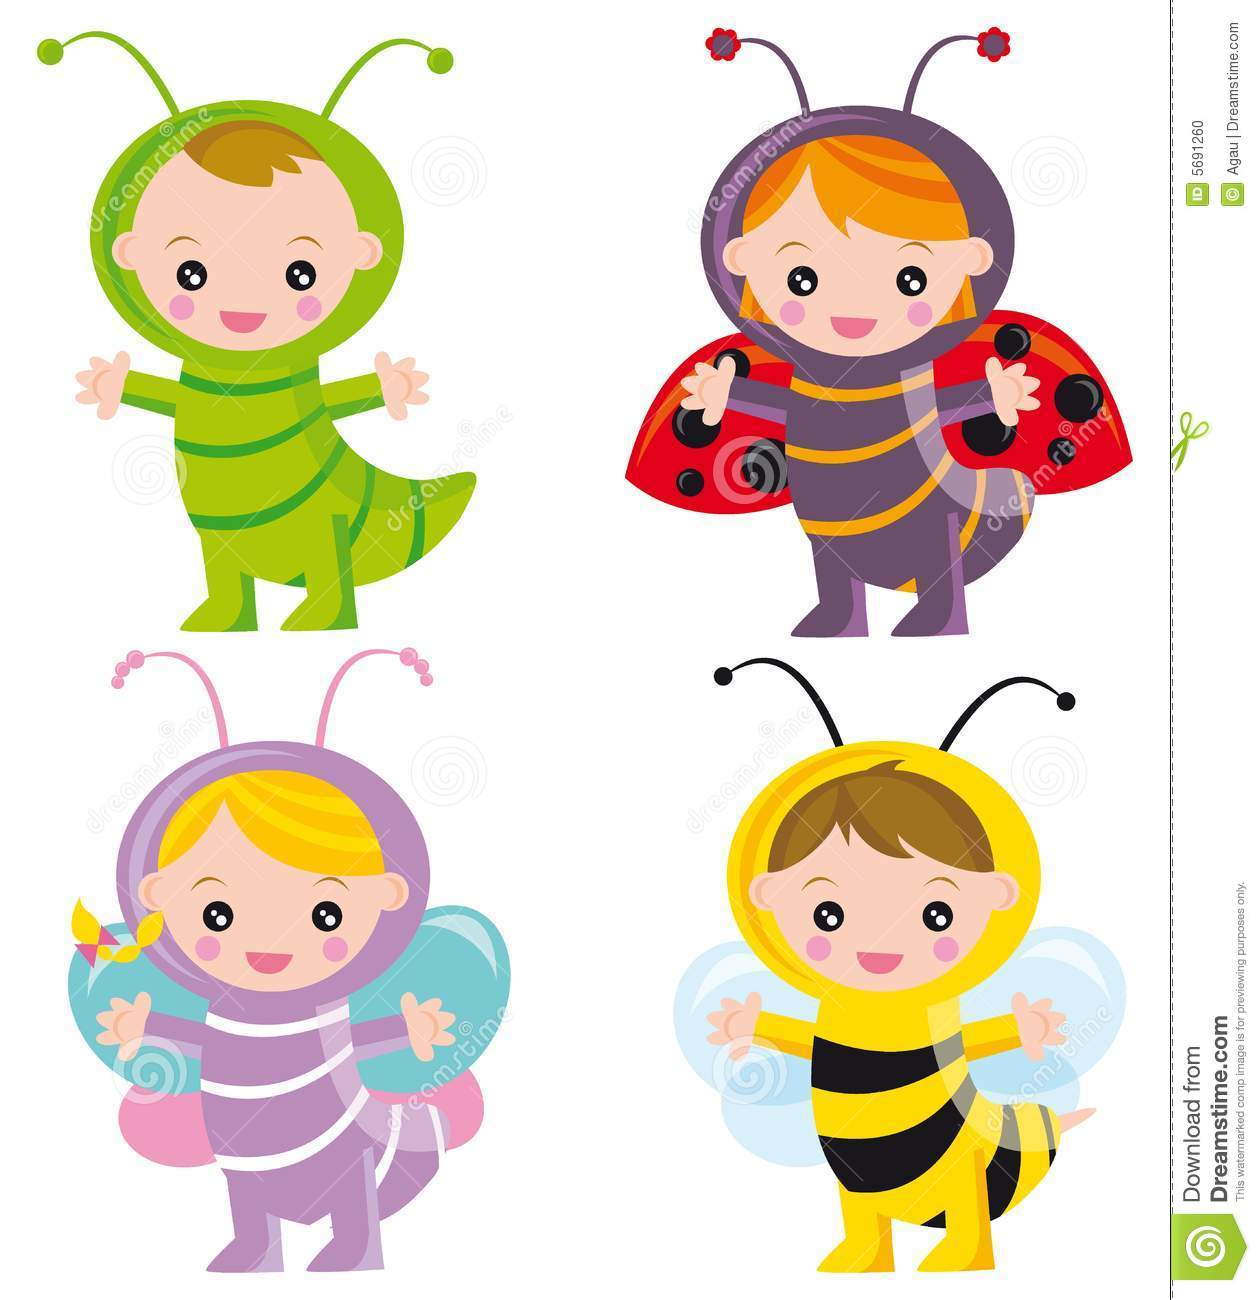 Funny insects stock vector. Image of bugs, butterfly ...